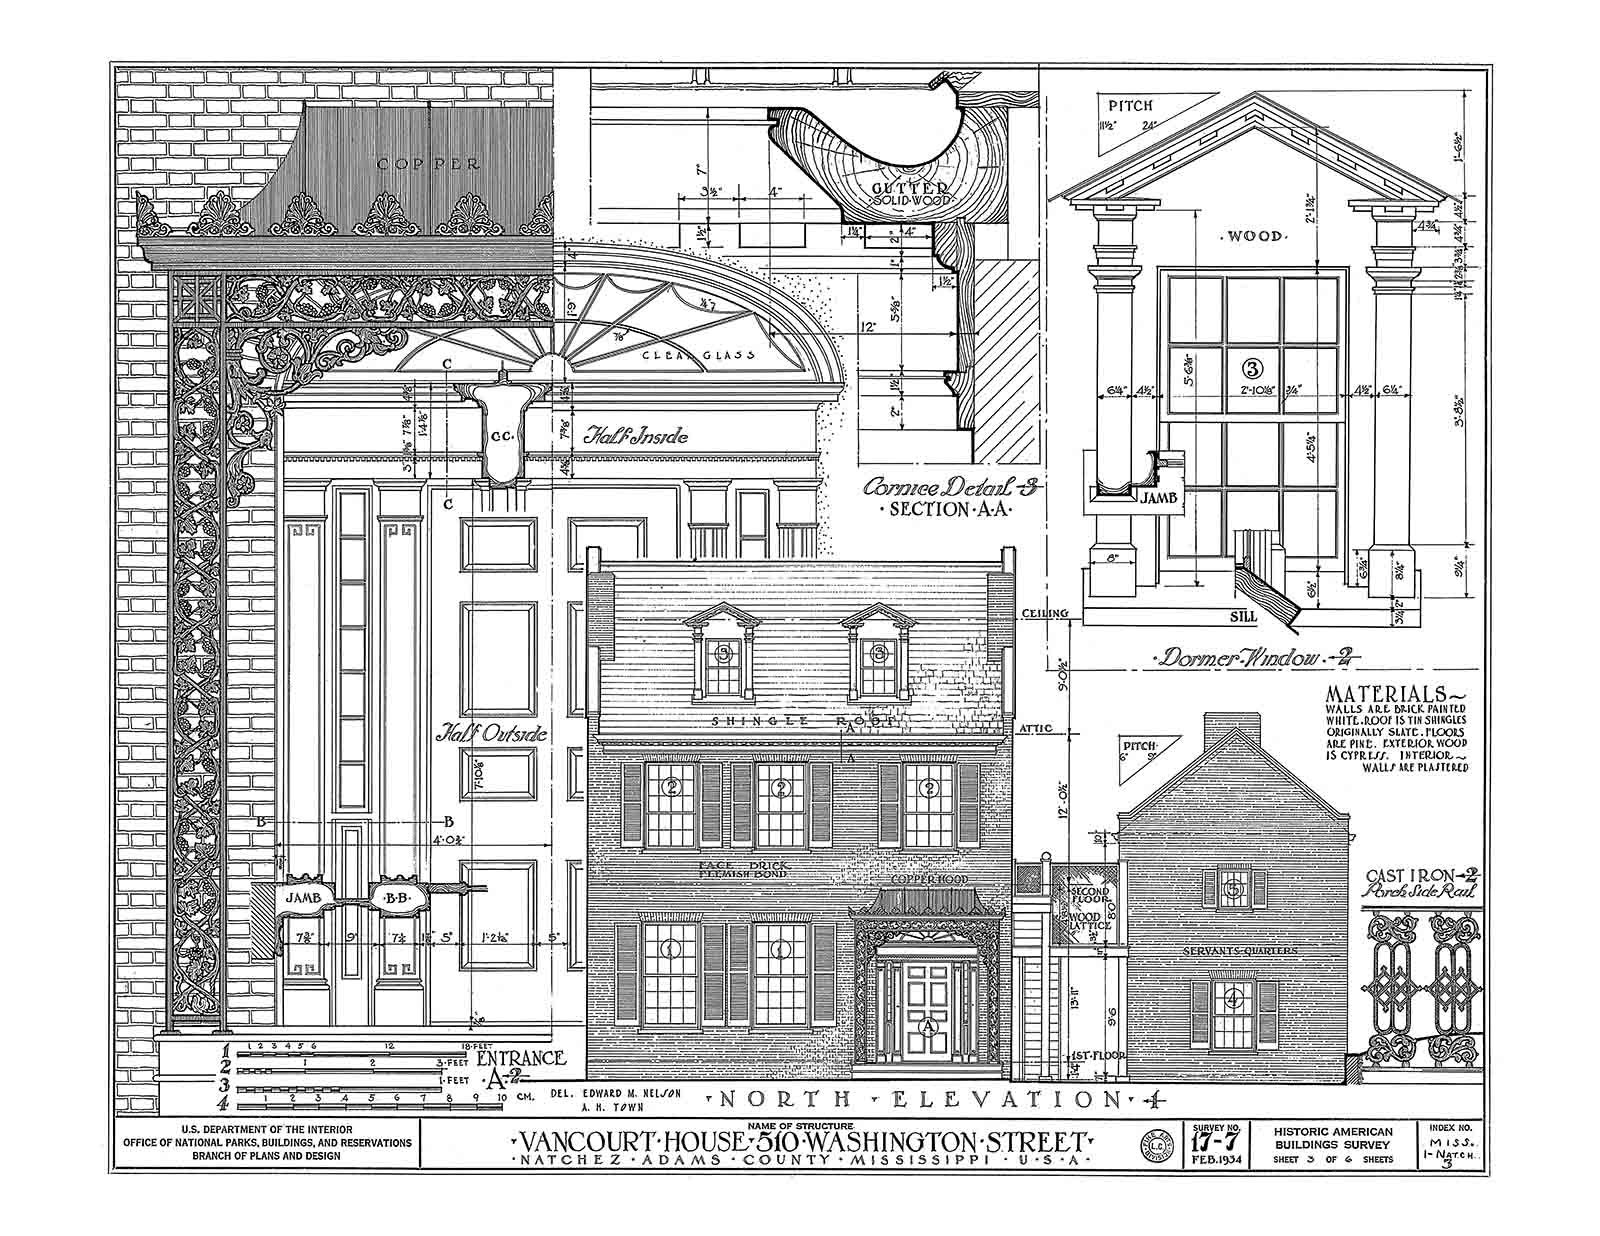 Historic House Plan Drawings of Natchez, Mississippi: J ... on little rock house plans, new haven house plans, charlottesville house plans, winona house plans, hammond house plans, united states house plans, abbeville house plans, new jersey house plans, louisville house plans, pass christian house plans, washington house plans, detroit house plans, iowa house plans, springfield house plans, springhill house plans, brownsville house plans, mississippi gulf coast house plans, oakland house plans, henderson house plans, lexington house plans,